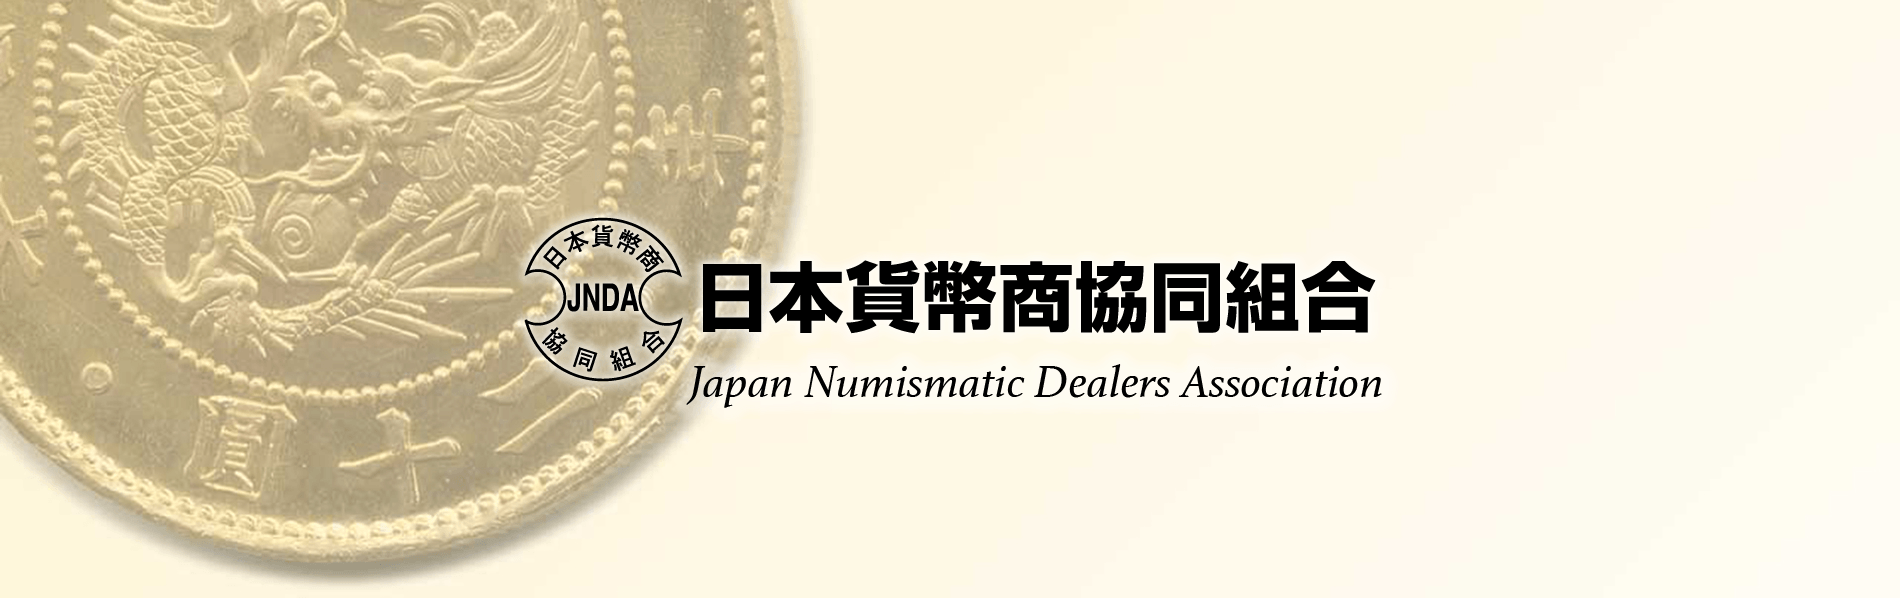 Japan Numismatic Dealers Association | English | 日本貨幣商